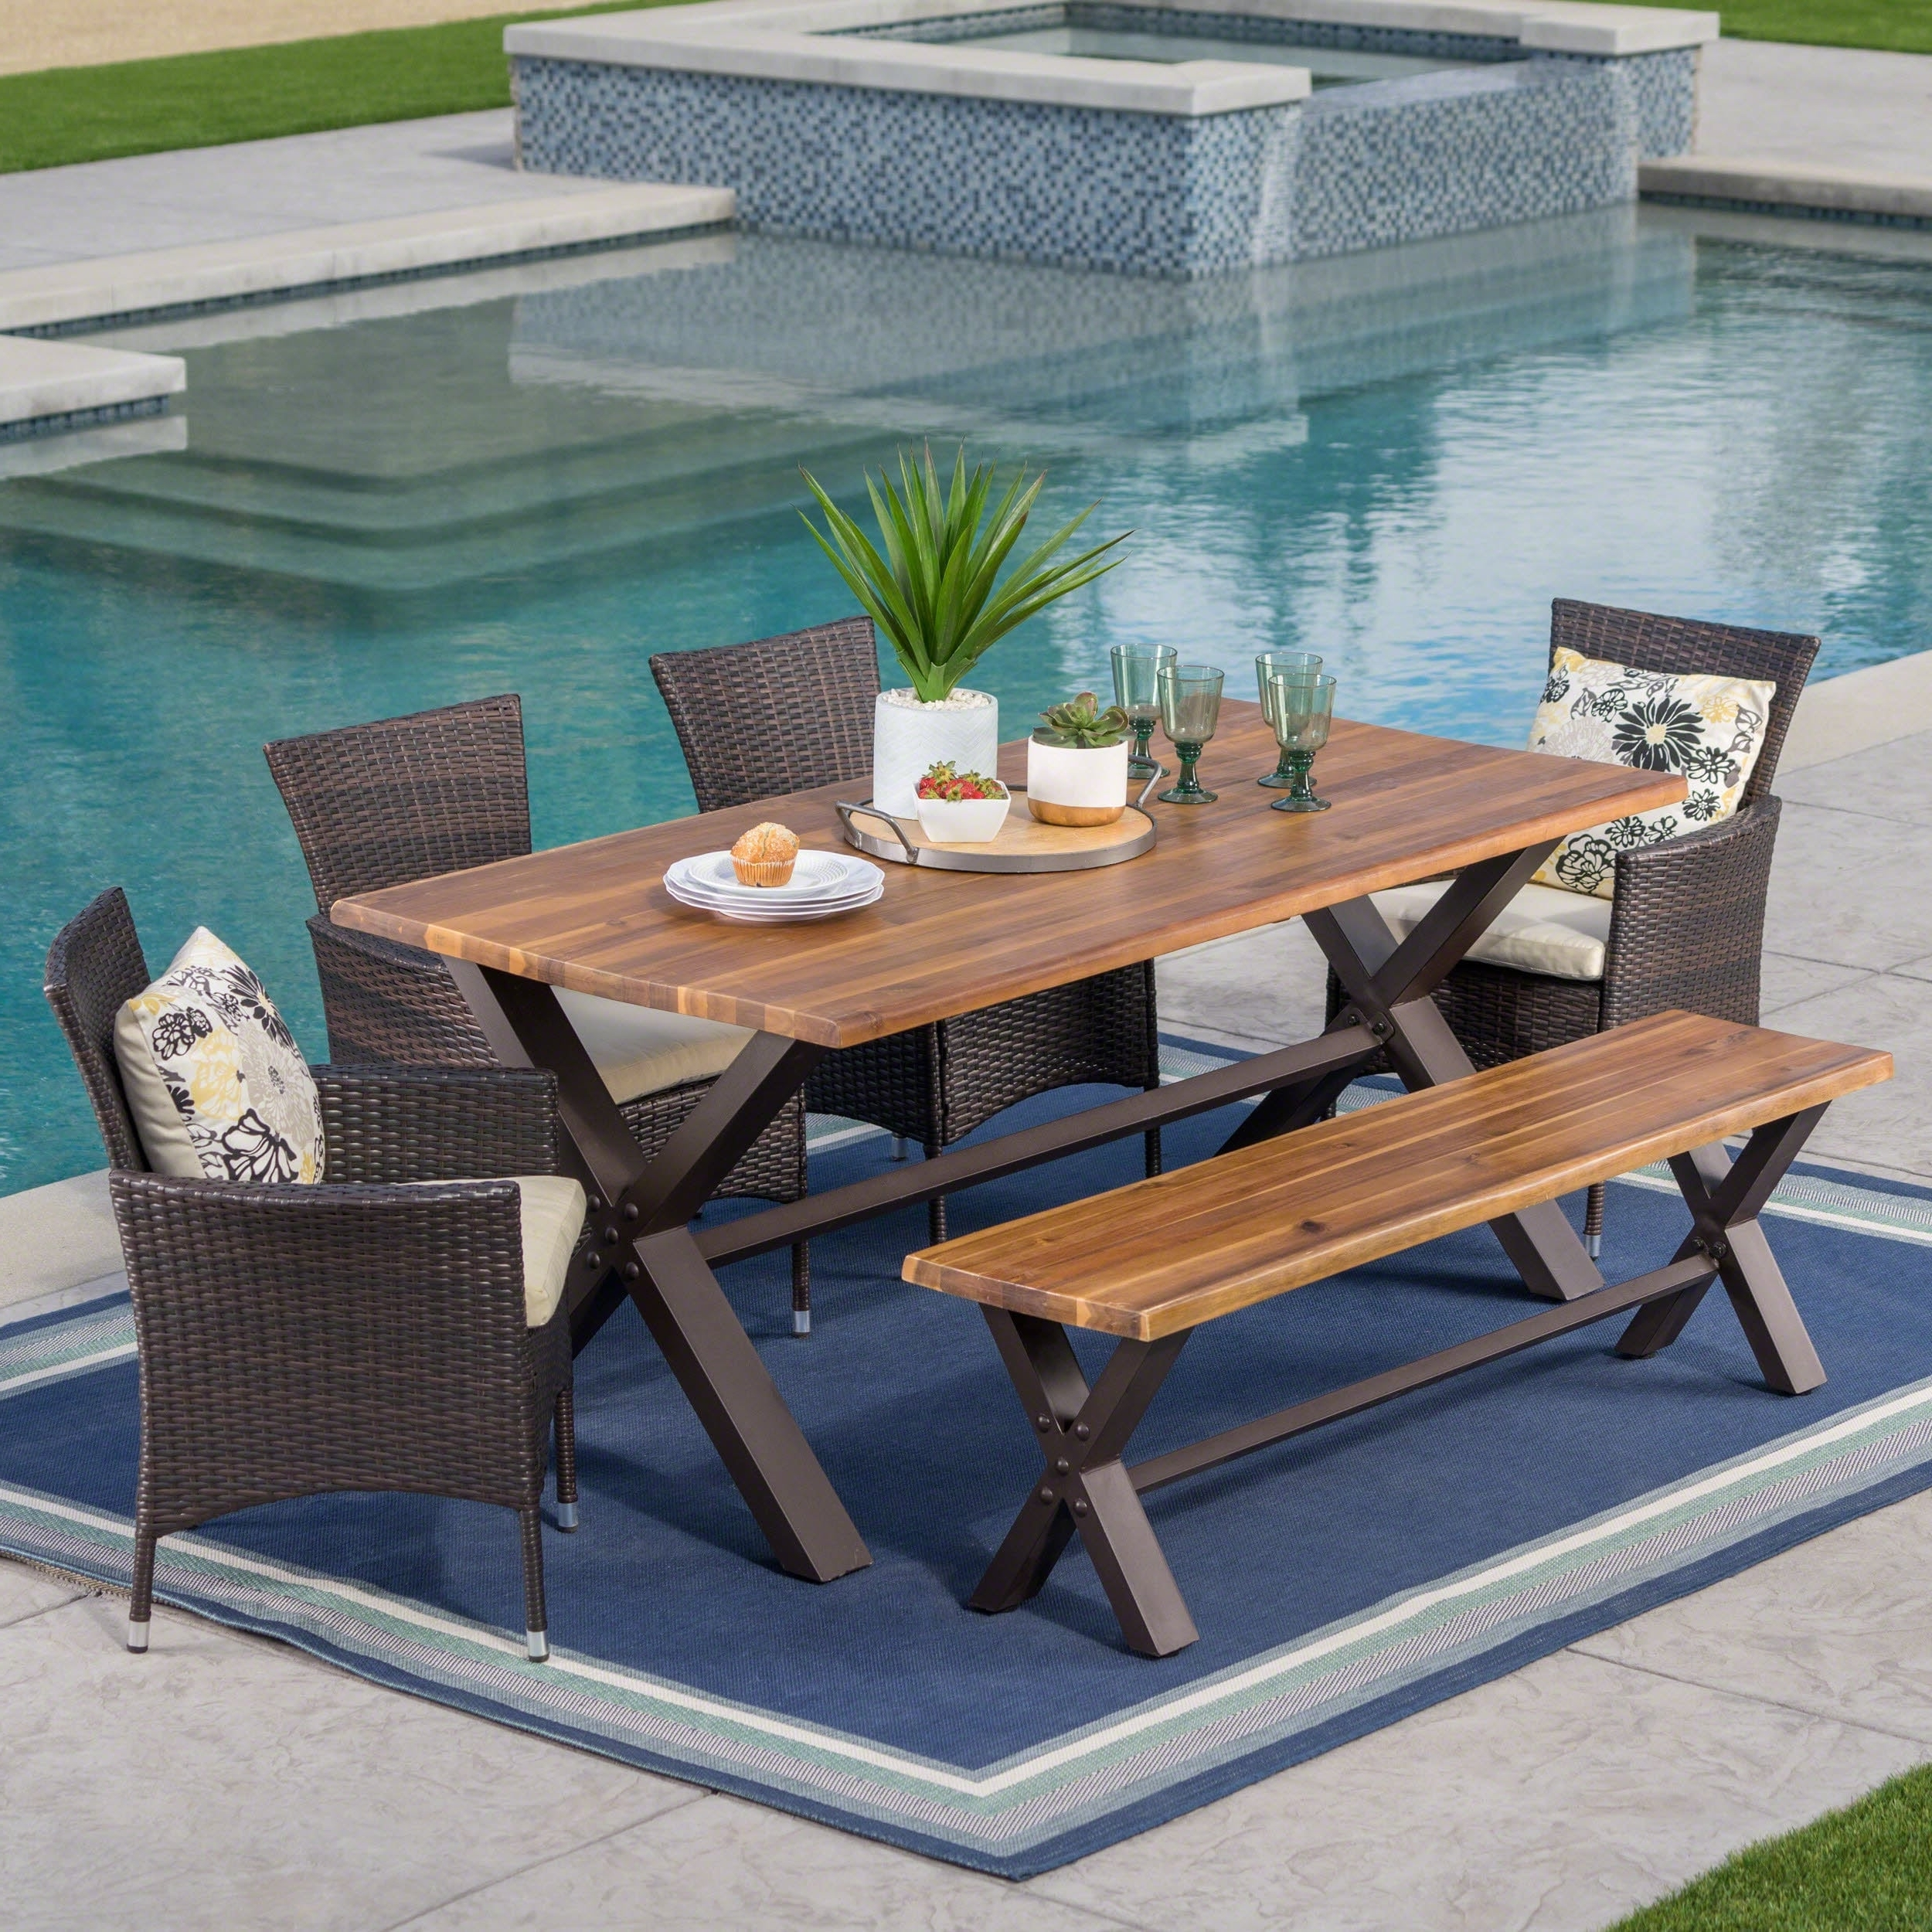 Patio Conversation Sets With Dining Table Within Widely Used Buy Outdoor Dining Sets Online At Overstock (View 11 of 15)